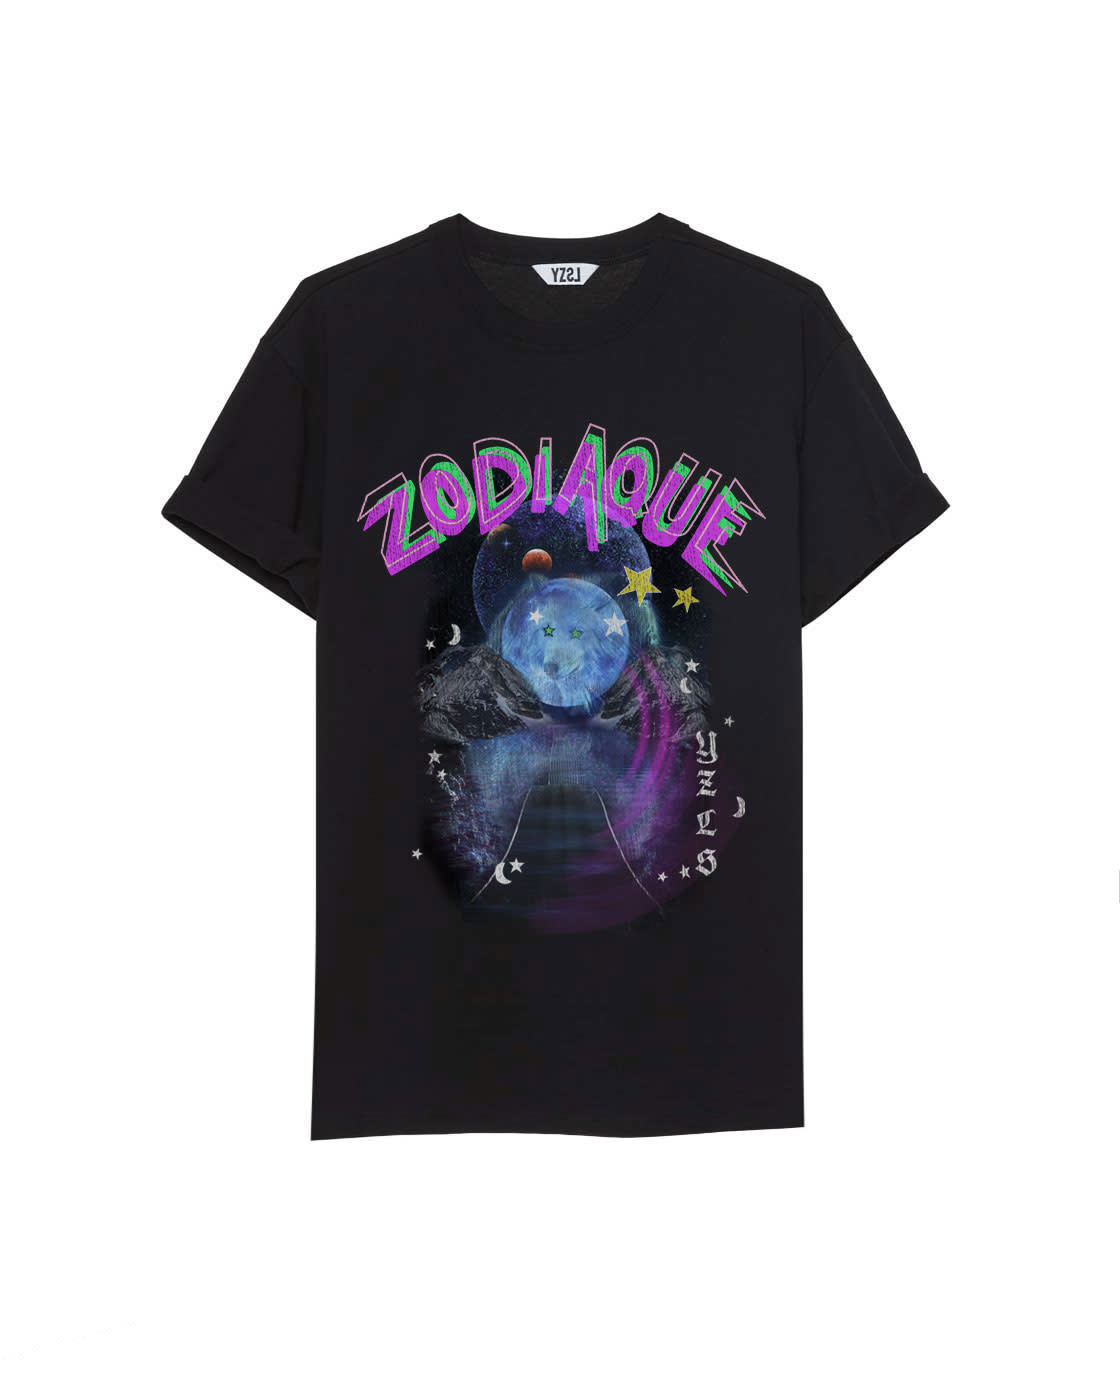 Tee Zodiaque black-1